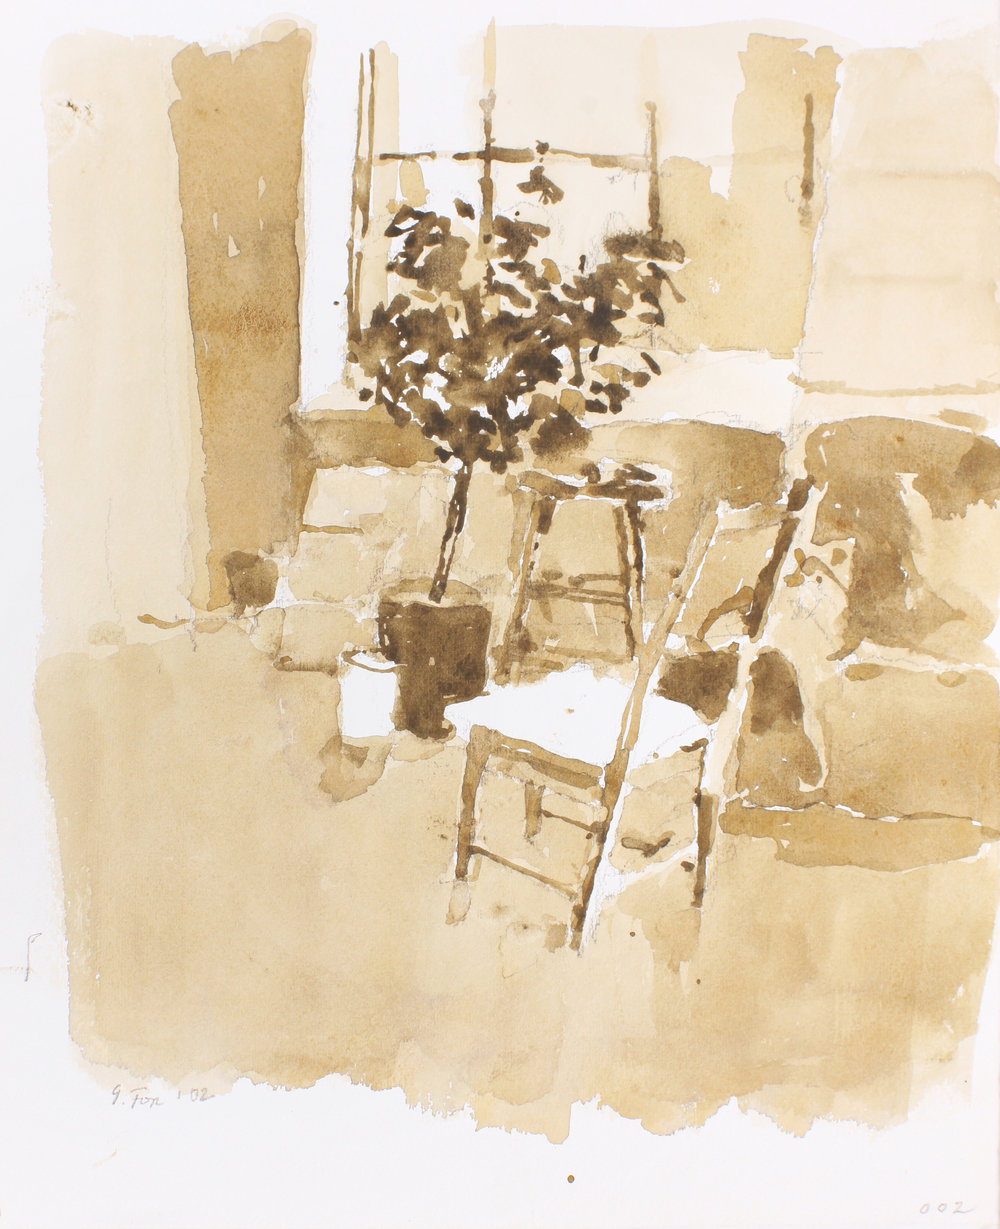 2002_Studio_Interior_with_Chair_and_Plant_watercolour_and_pencil_on_paper_14x11in_WPF639.jpg